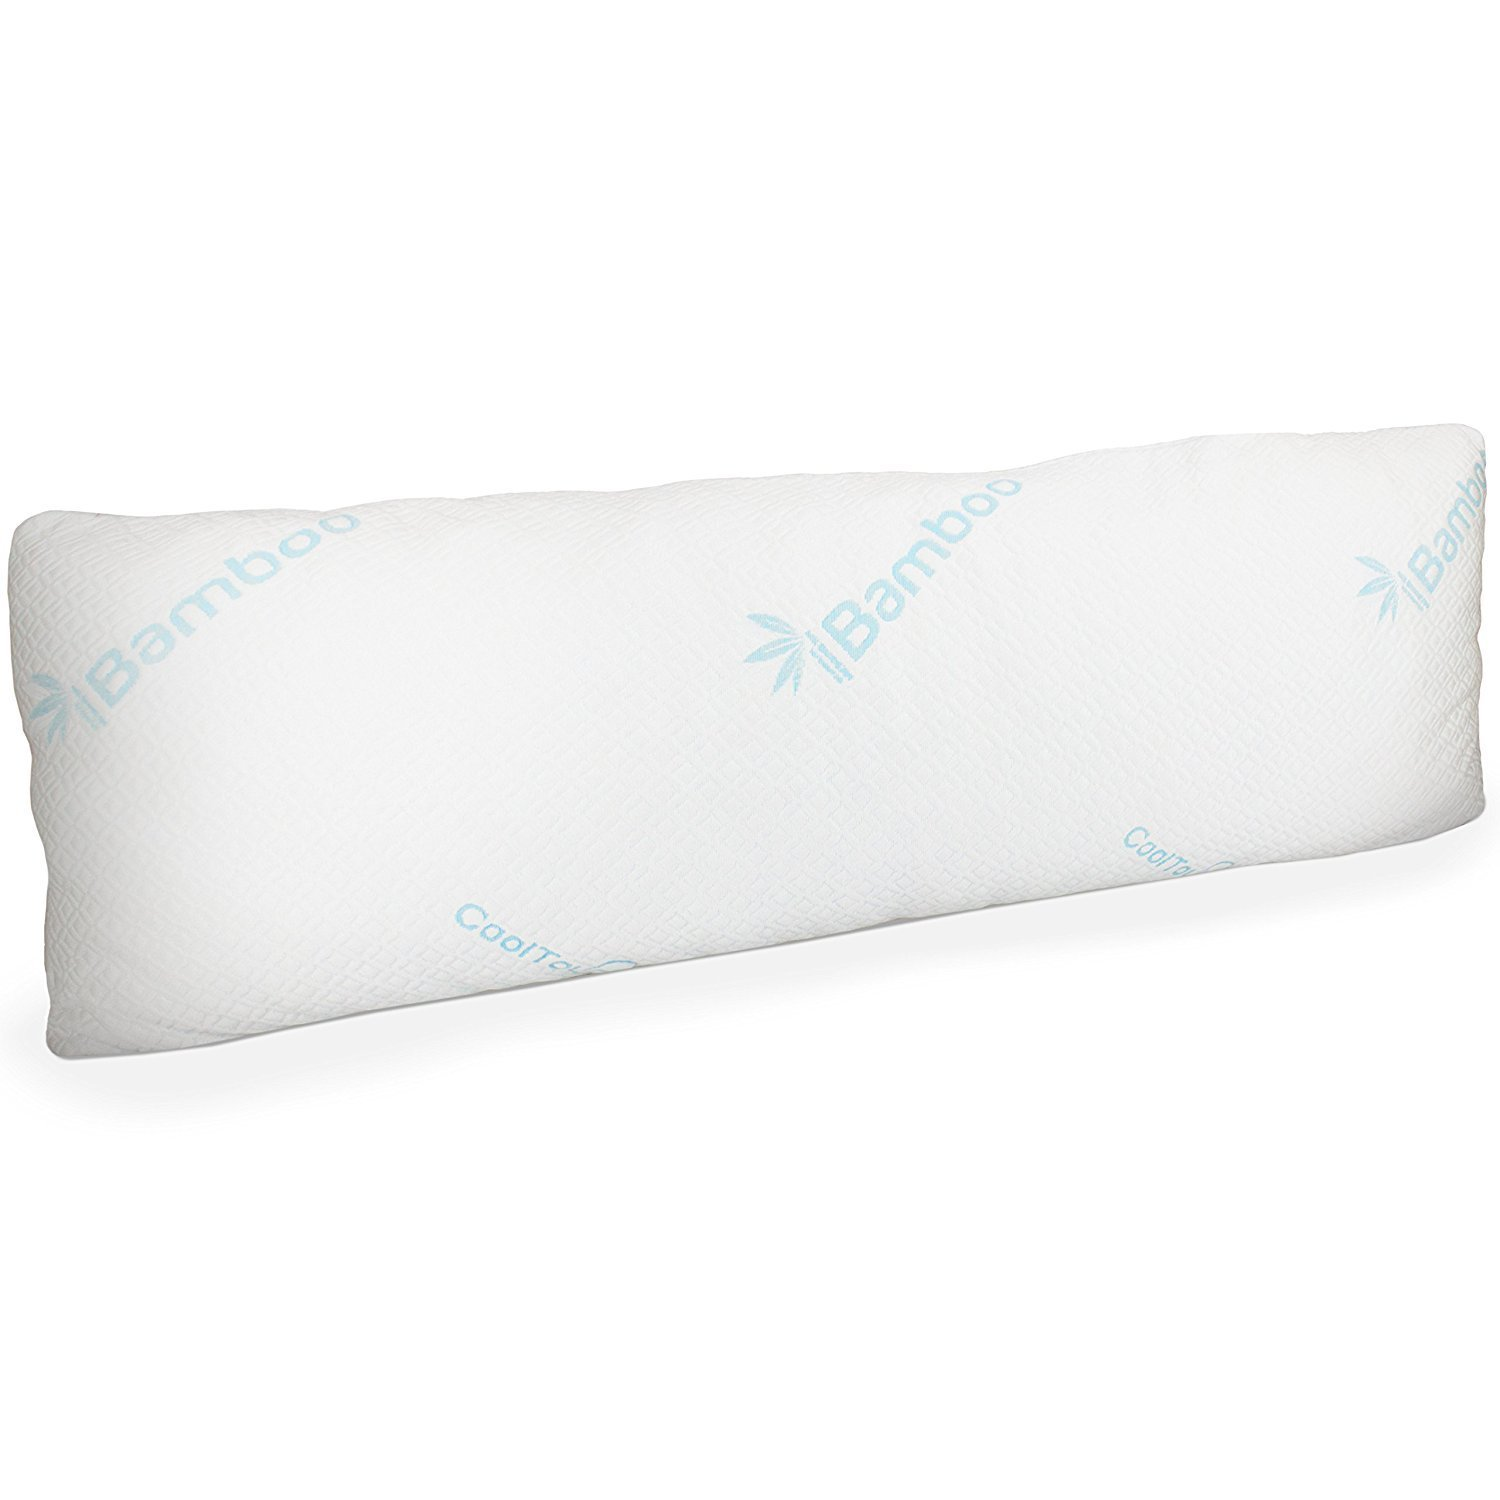 Memory Foam Body Pillow With Bamboo Cover Home Furniture